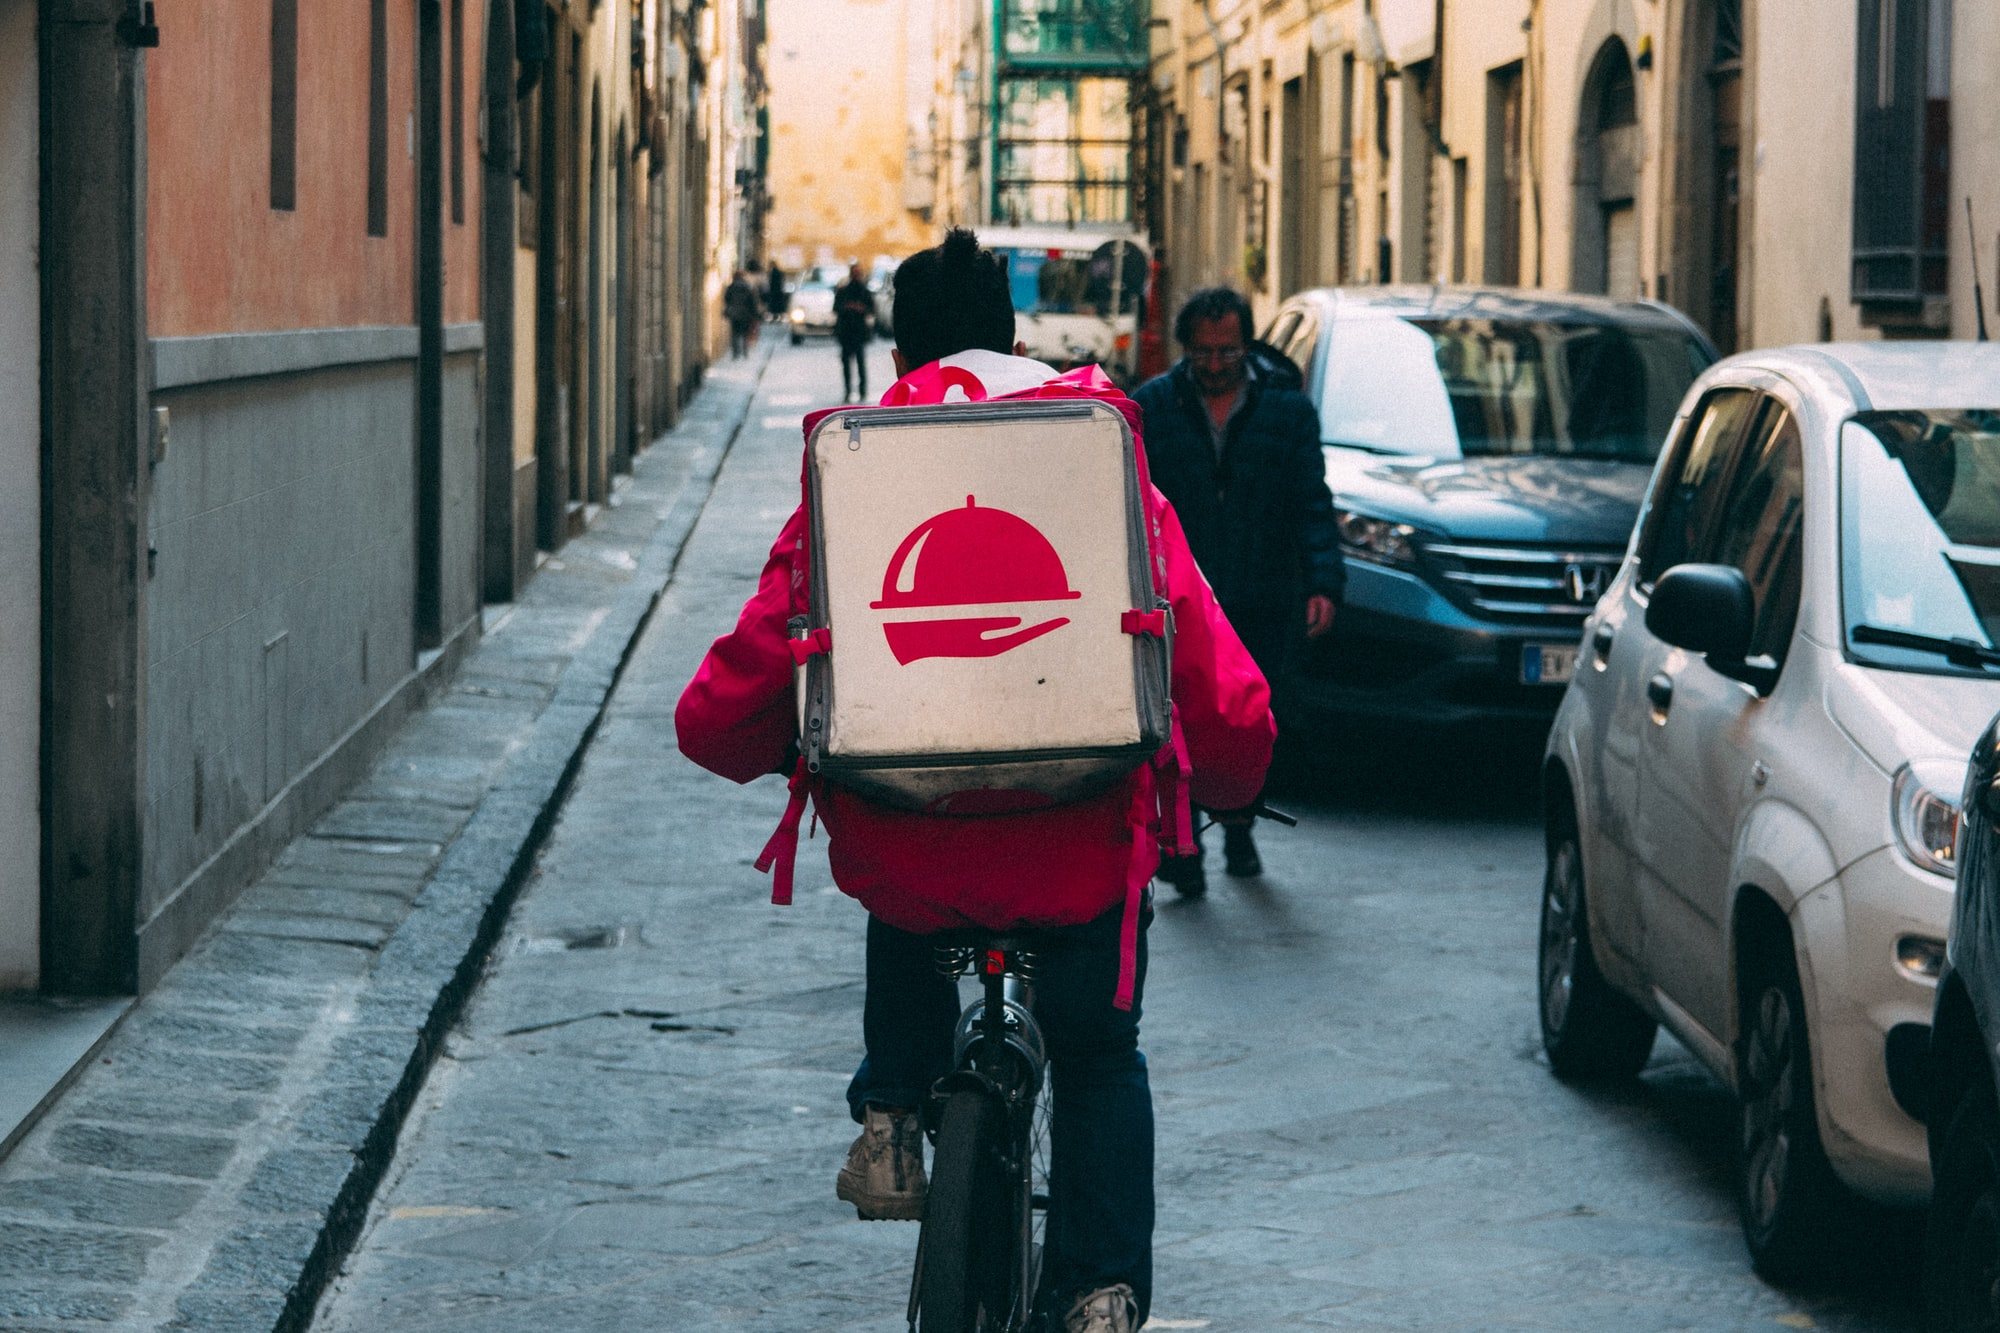 Interesting Food Delivery Business Ideas to Start in 2021